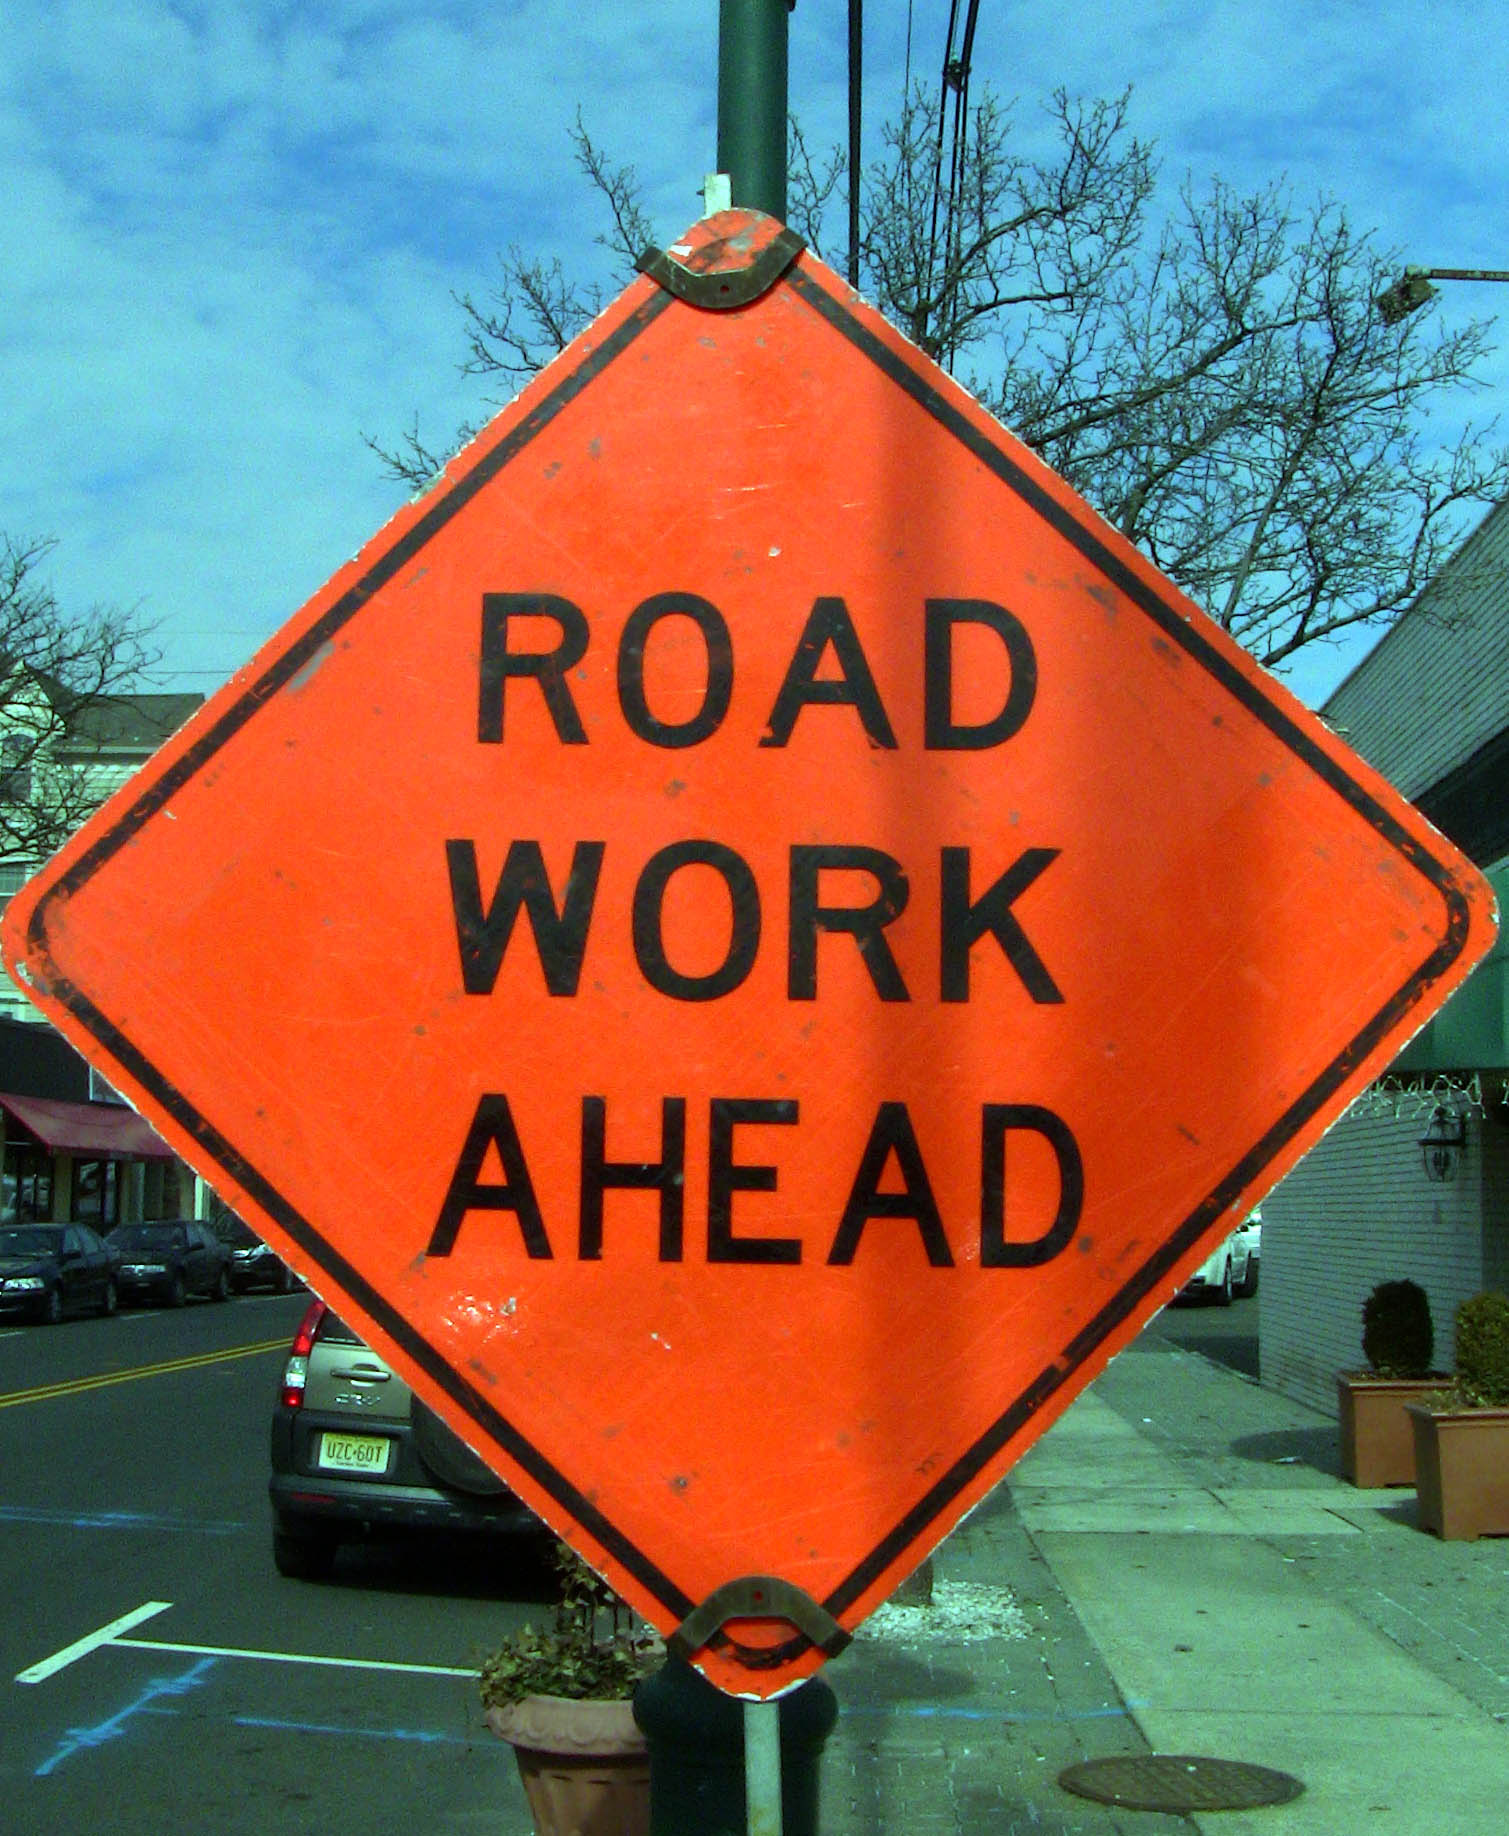 22e9bd7cb79137741918_Road_Work_Ahead_sign.jpg